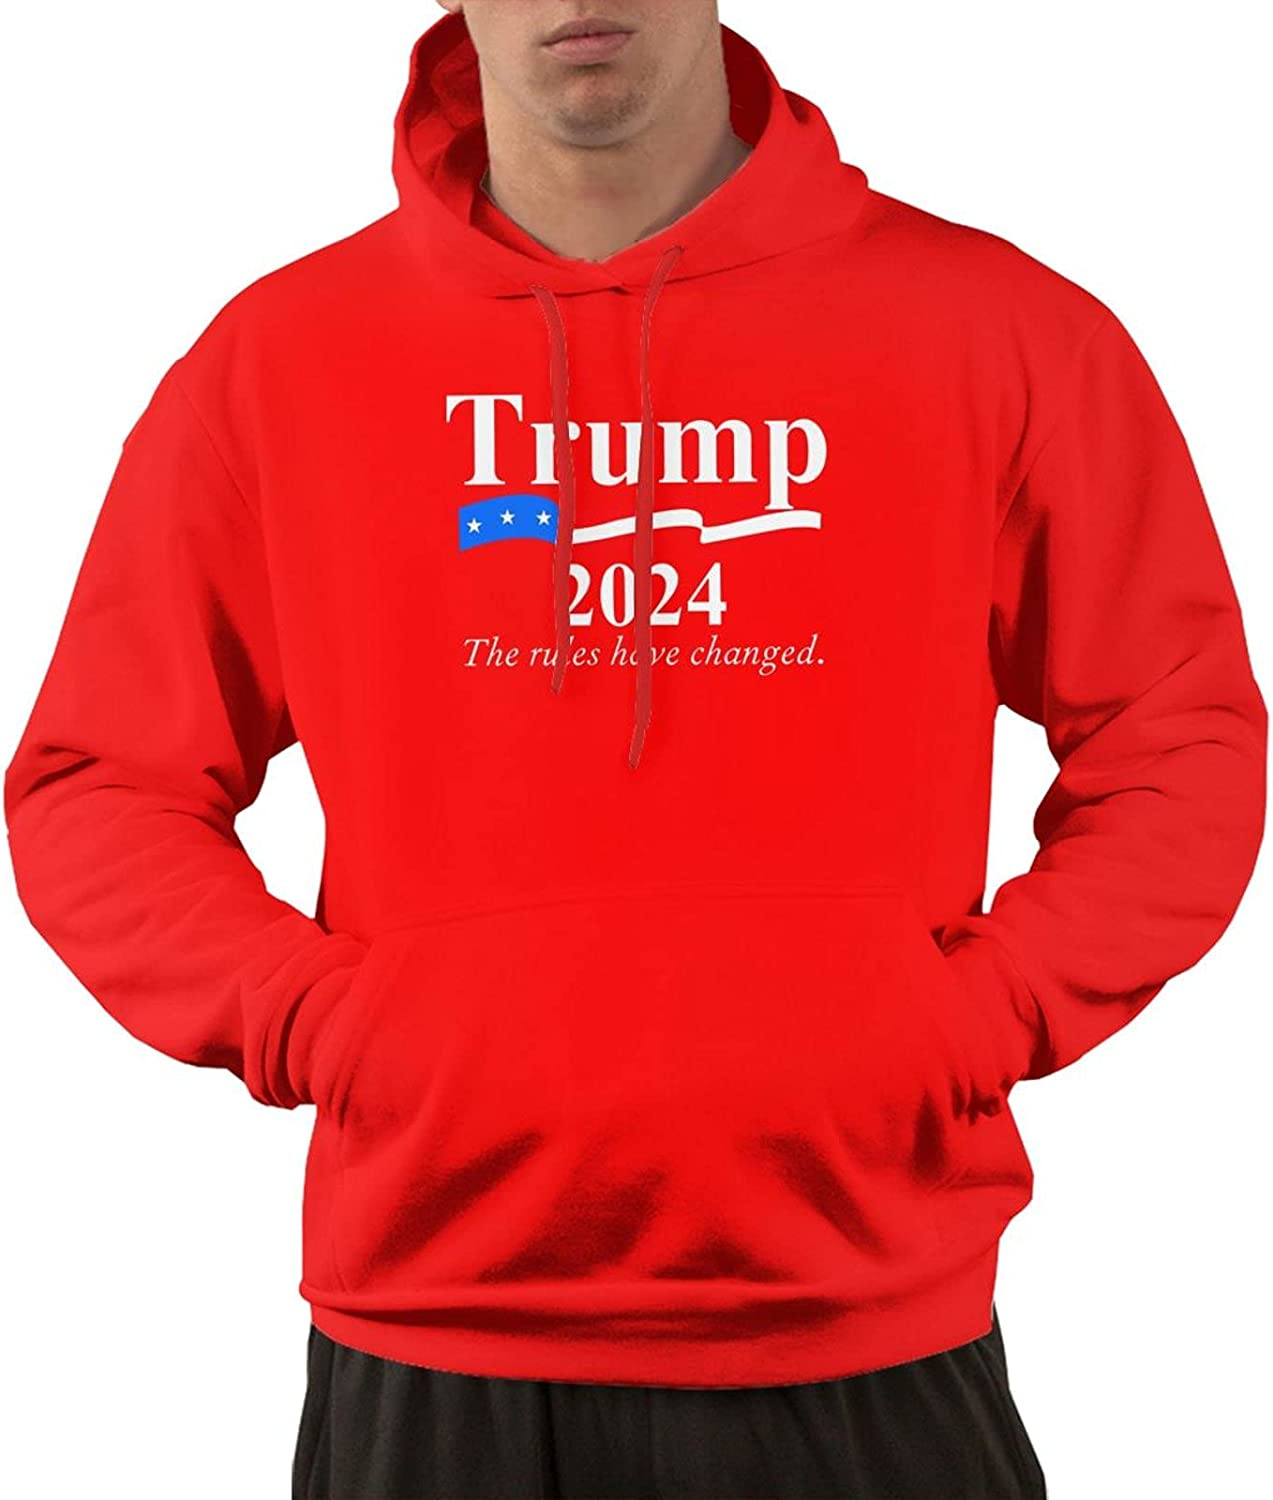 Trump 2024 Man With A Slim Sweatshirt Pocket Fit It is All items in the store very popular Sweater